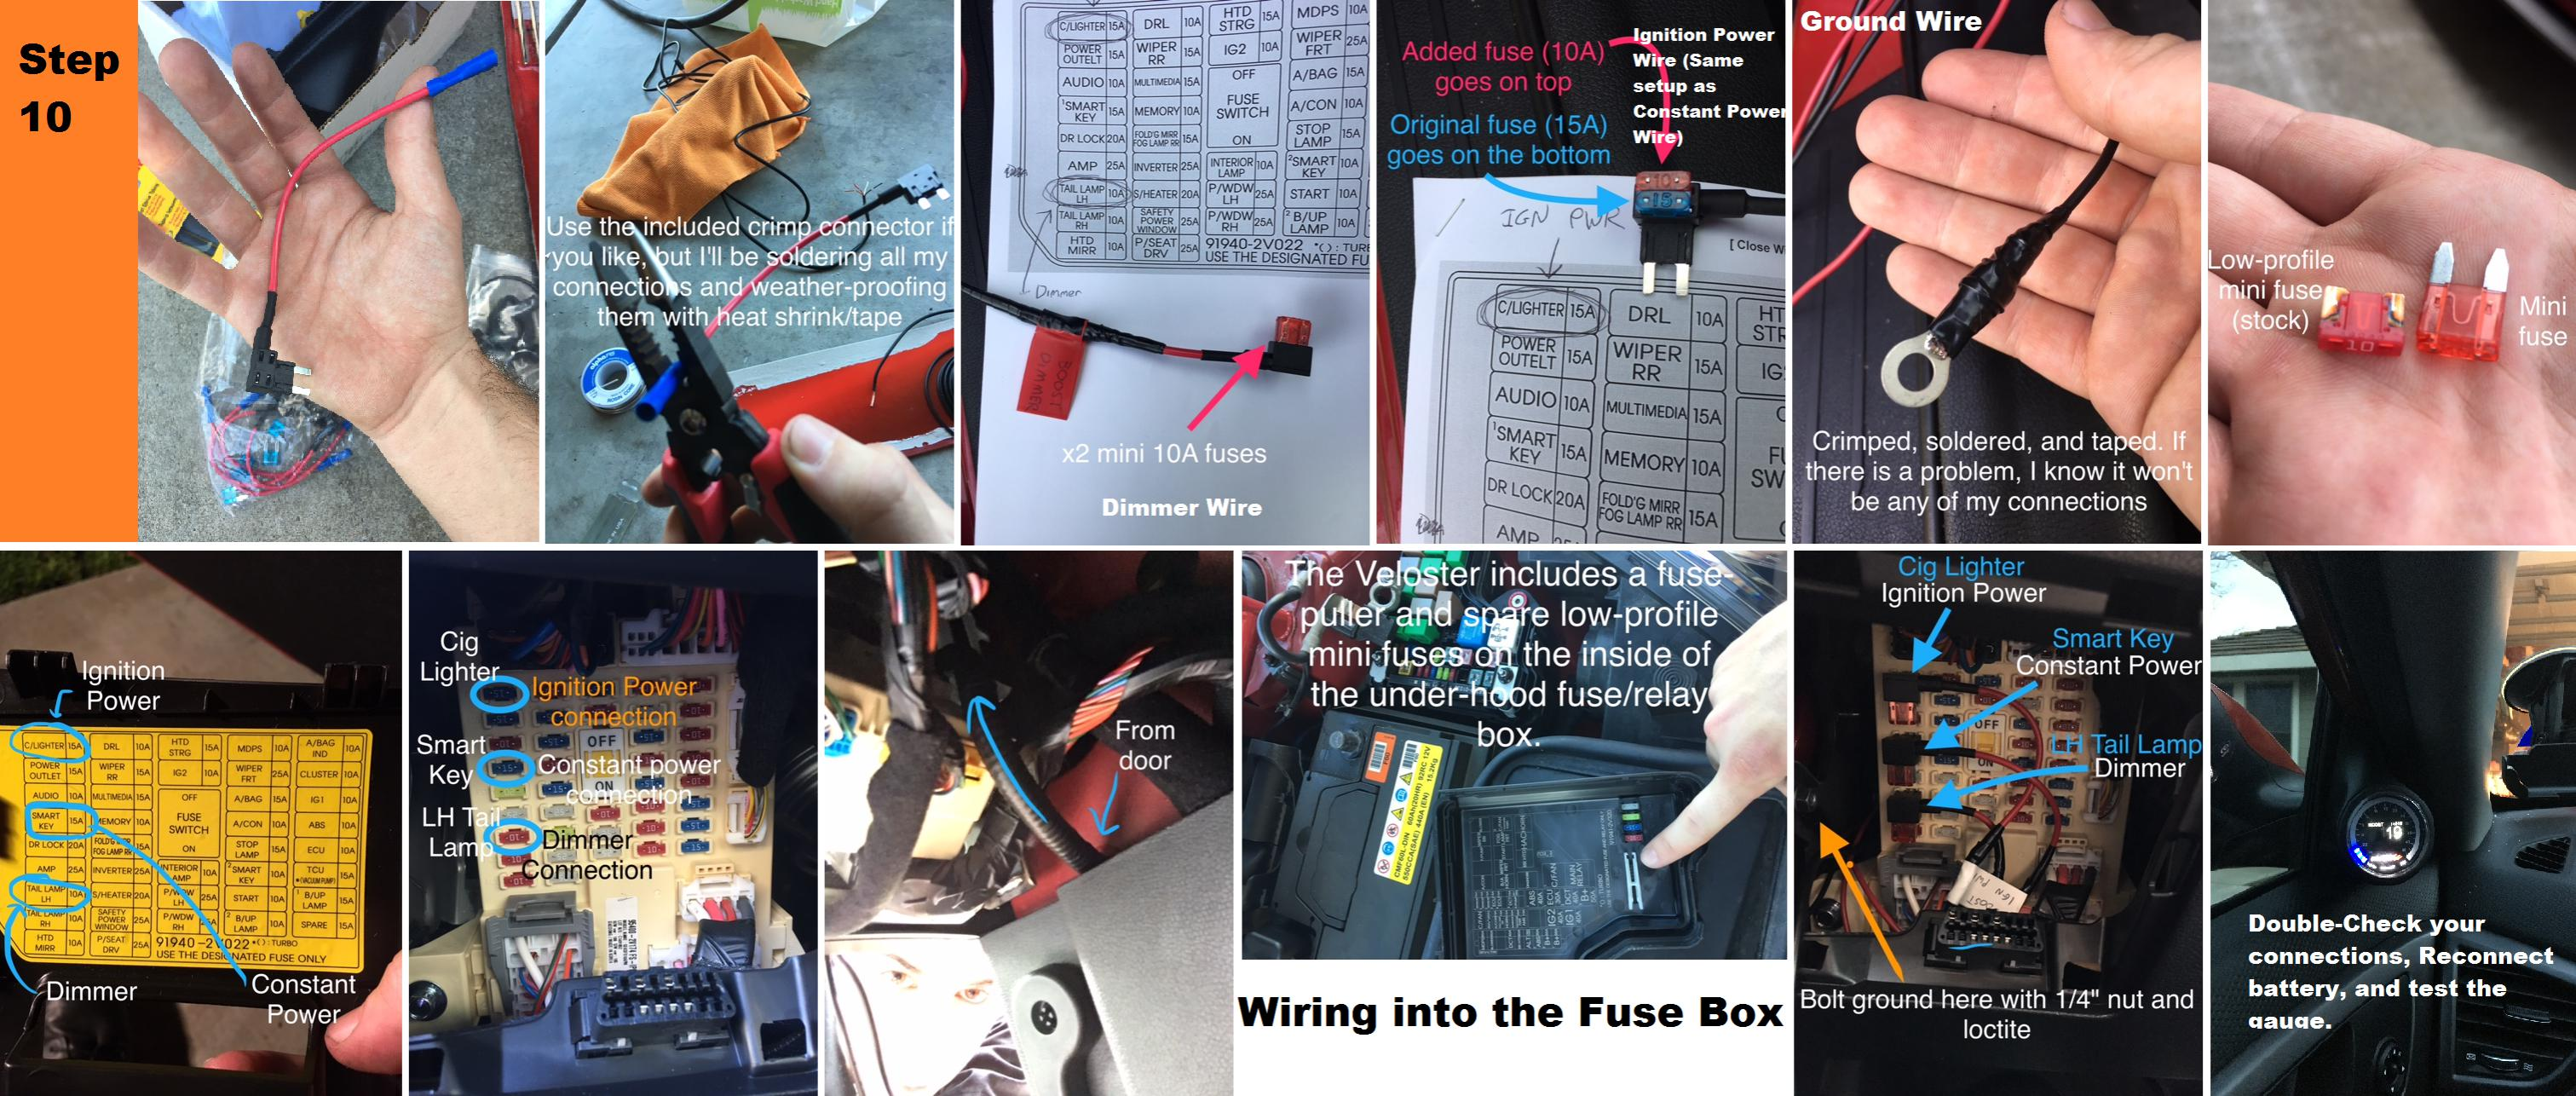 Complete Guide Tanabe Boost Gauge Aeroforce Door Pod 6ee Vacuum Wiring Into A Fuse Box Name 4 The Views 762 Size